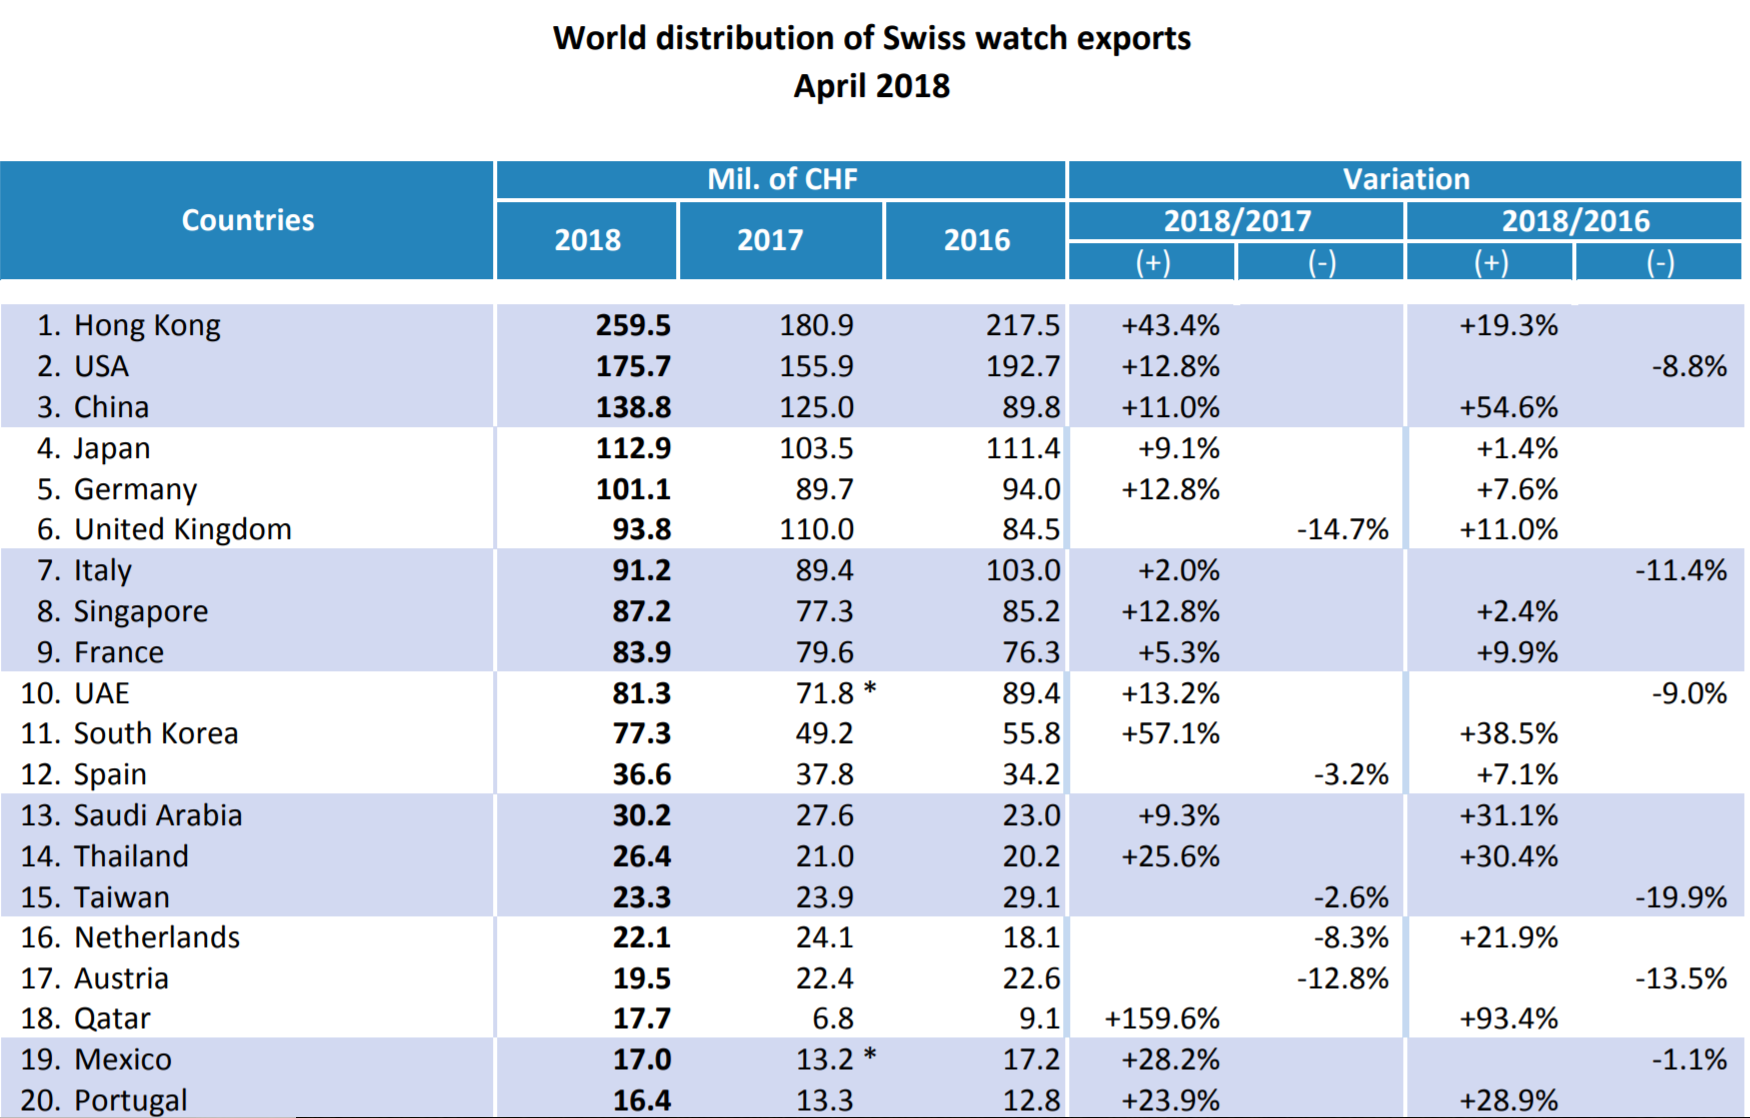 USA consolidates position as second largest market for Swiss watches